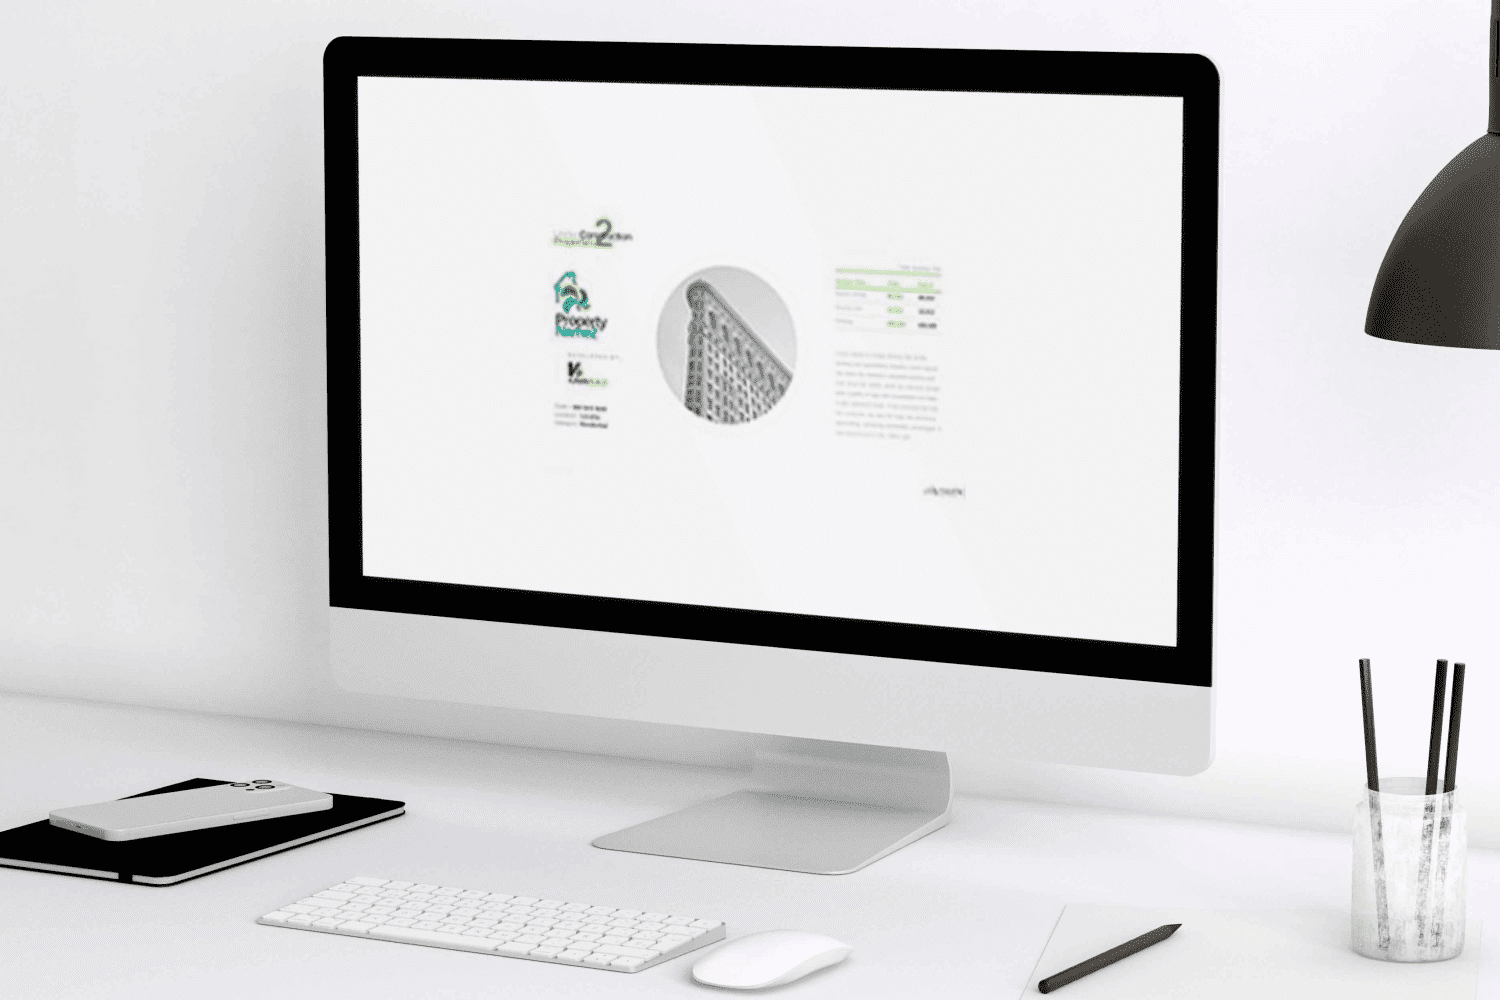 Desktop in laconic style with the real estate construction presentation.